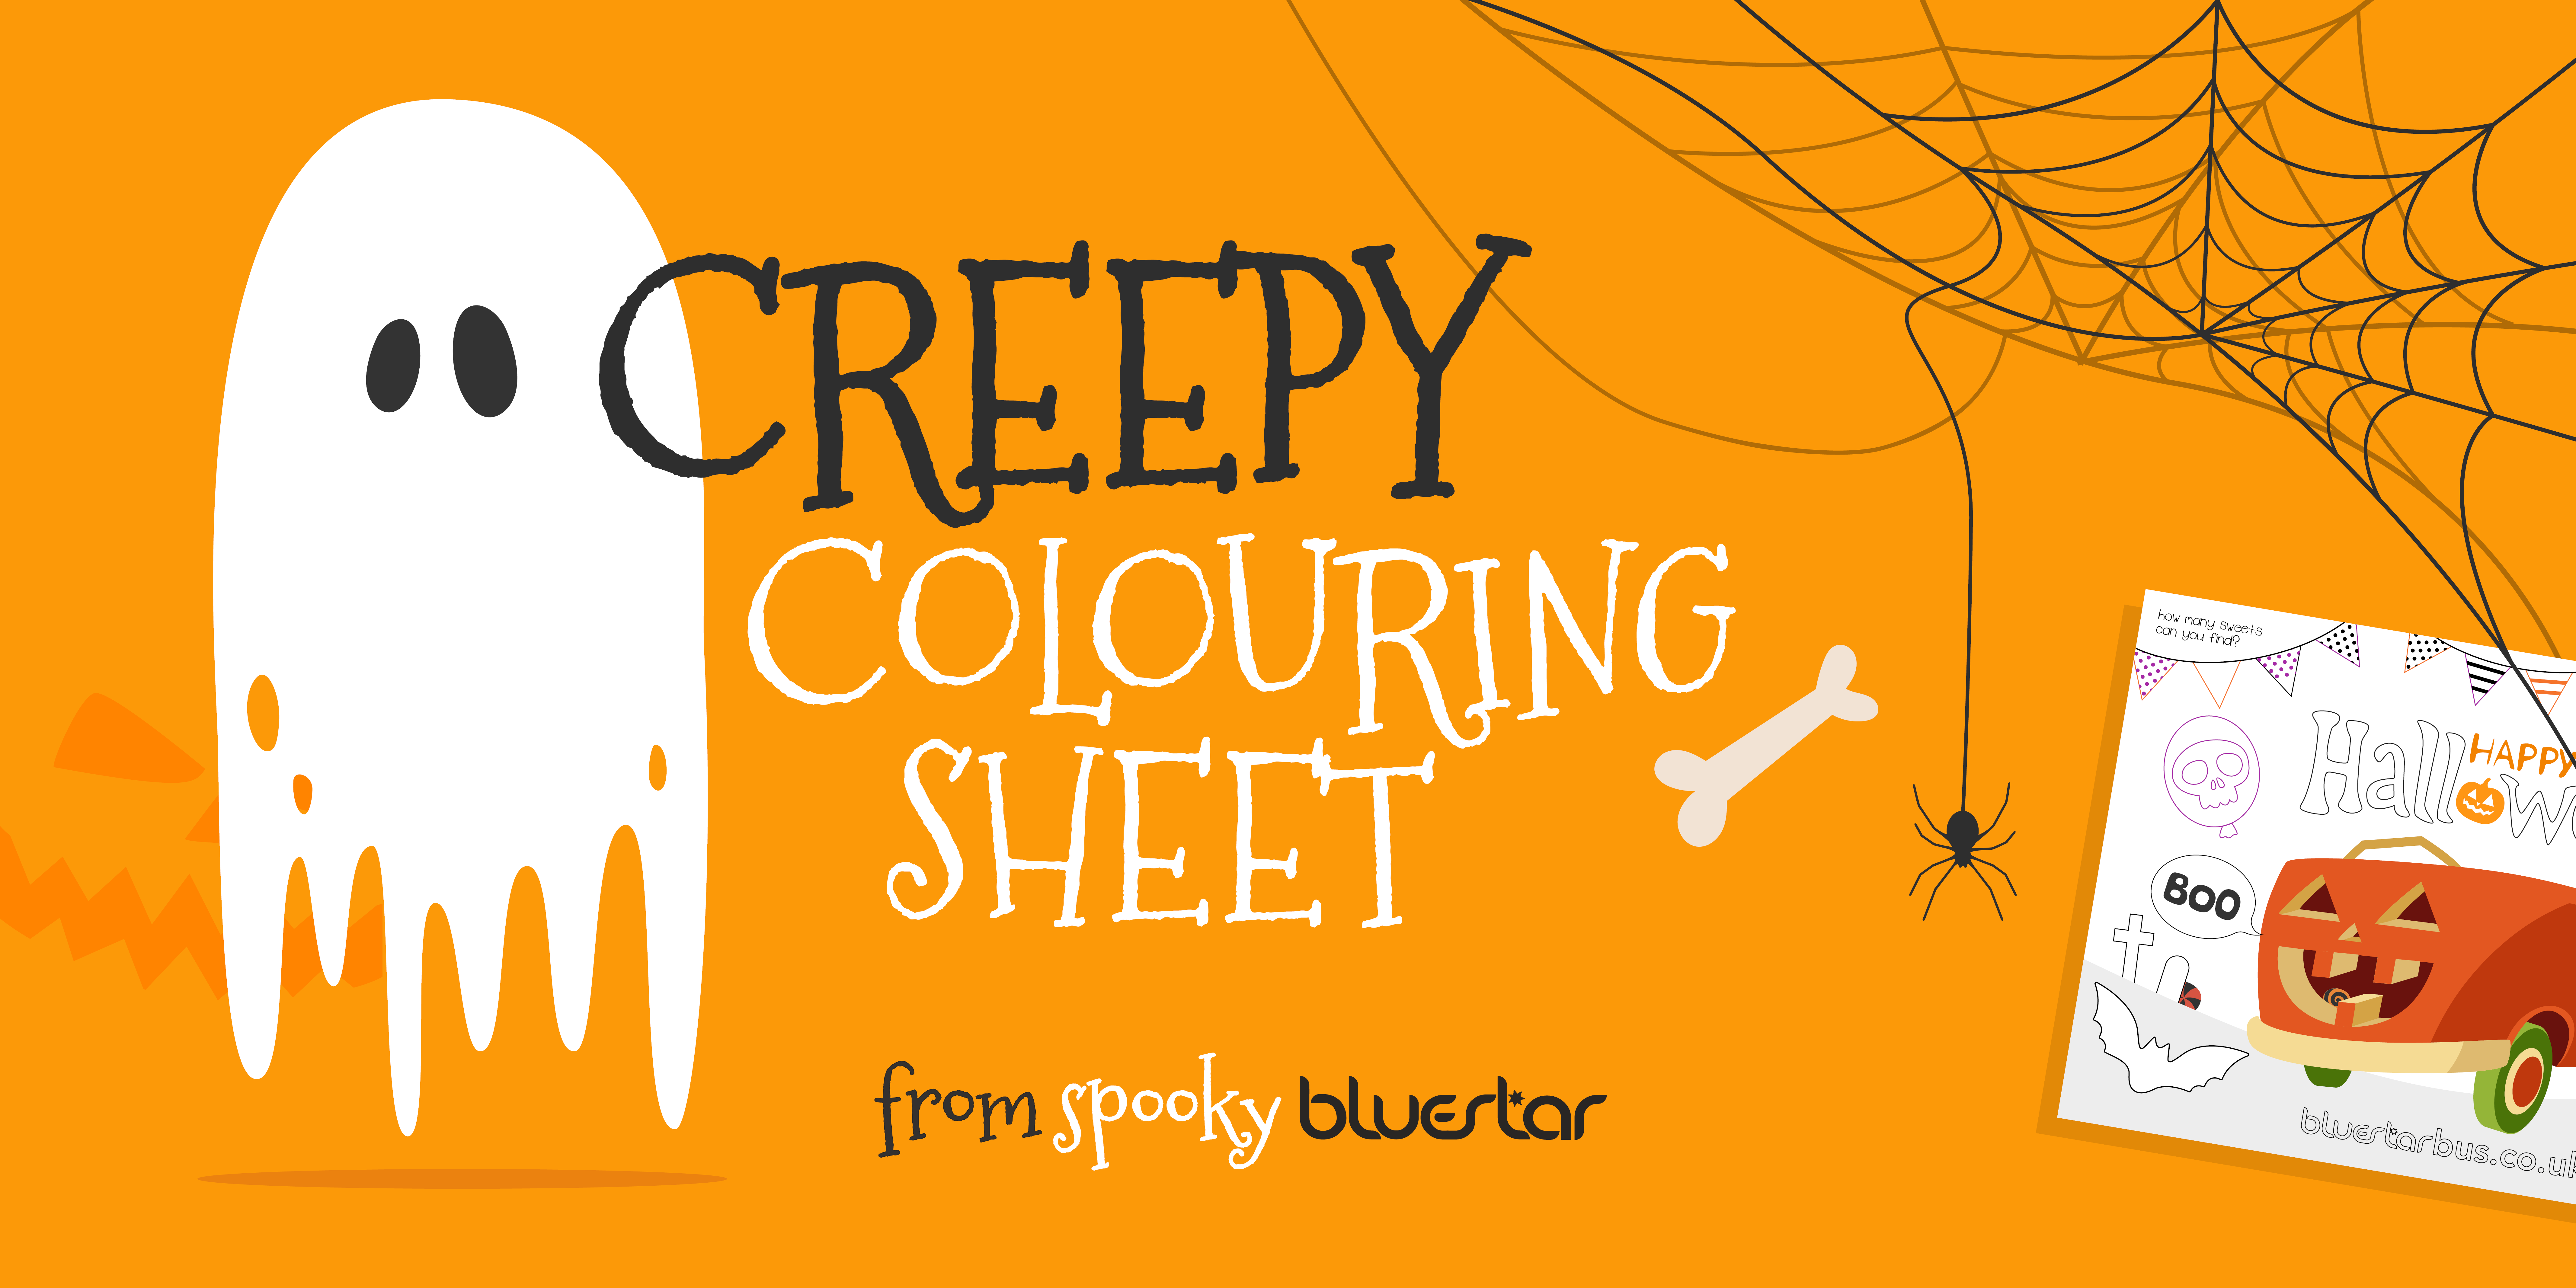 Image with a ghost and spiders web saying 'Creepy colouring sheet, from spooky bluestar'